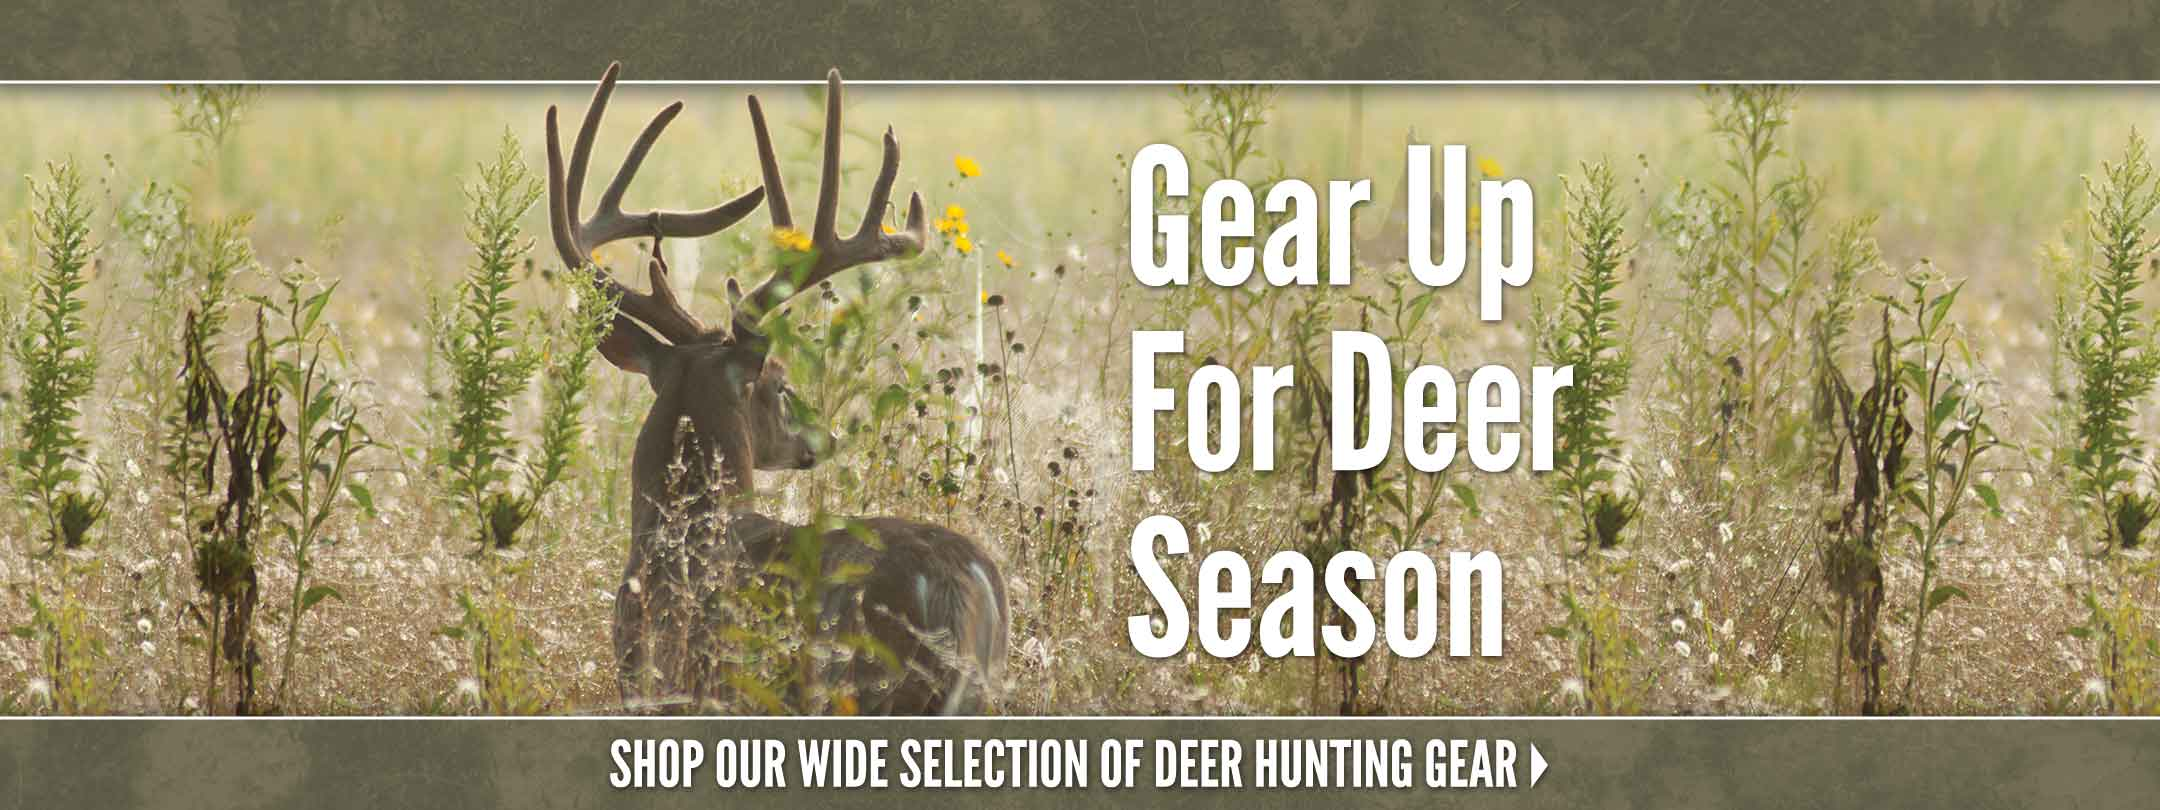 Gear Up For Deer Season